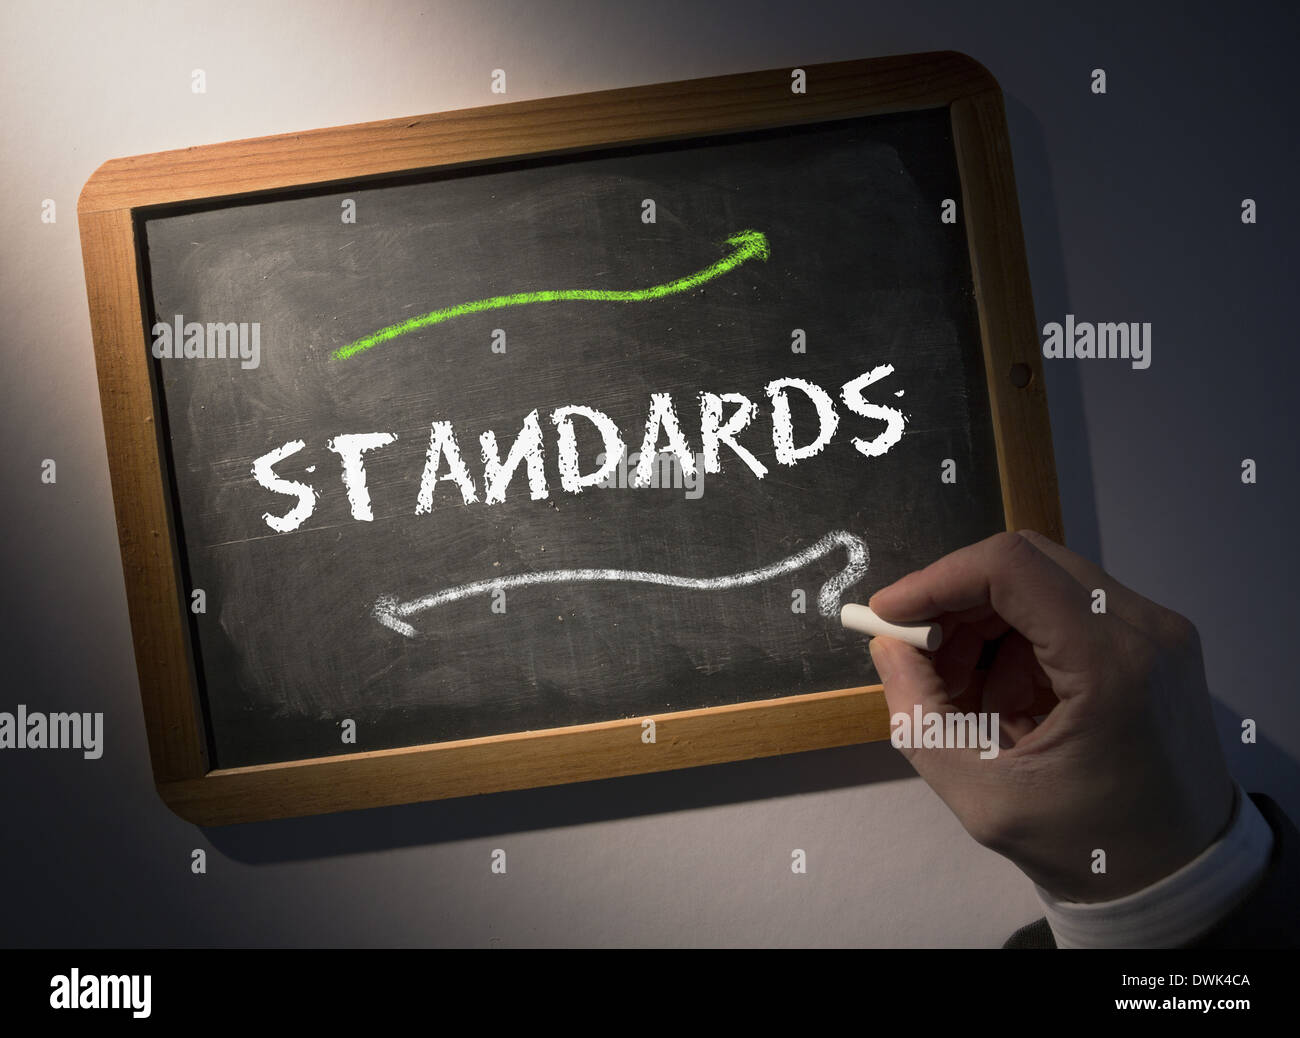 Hand writing Standards on chalkboard - Stock Image